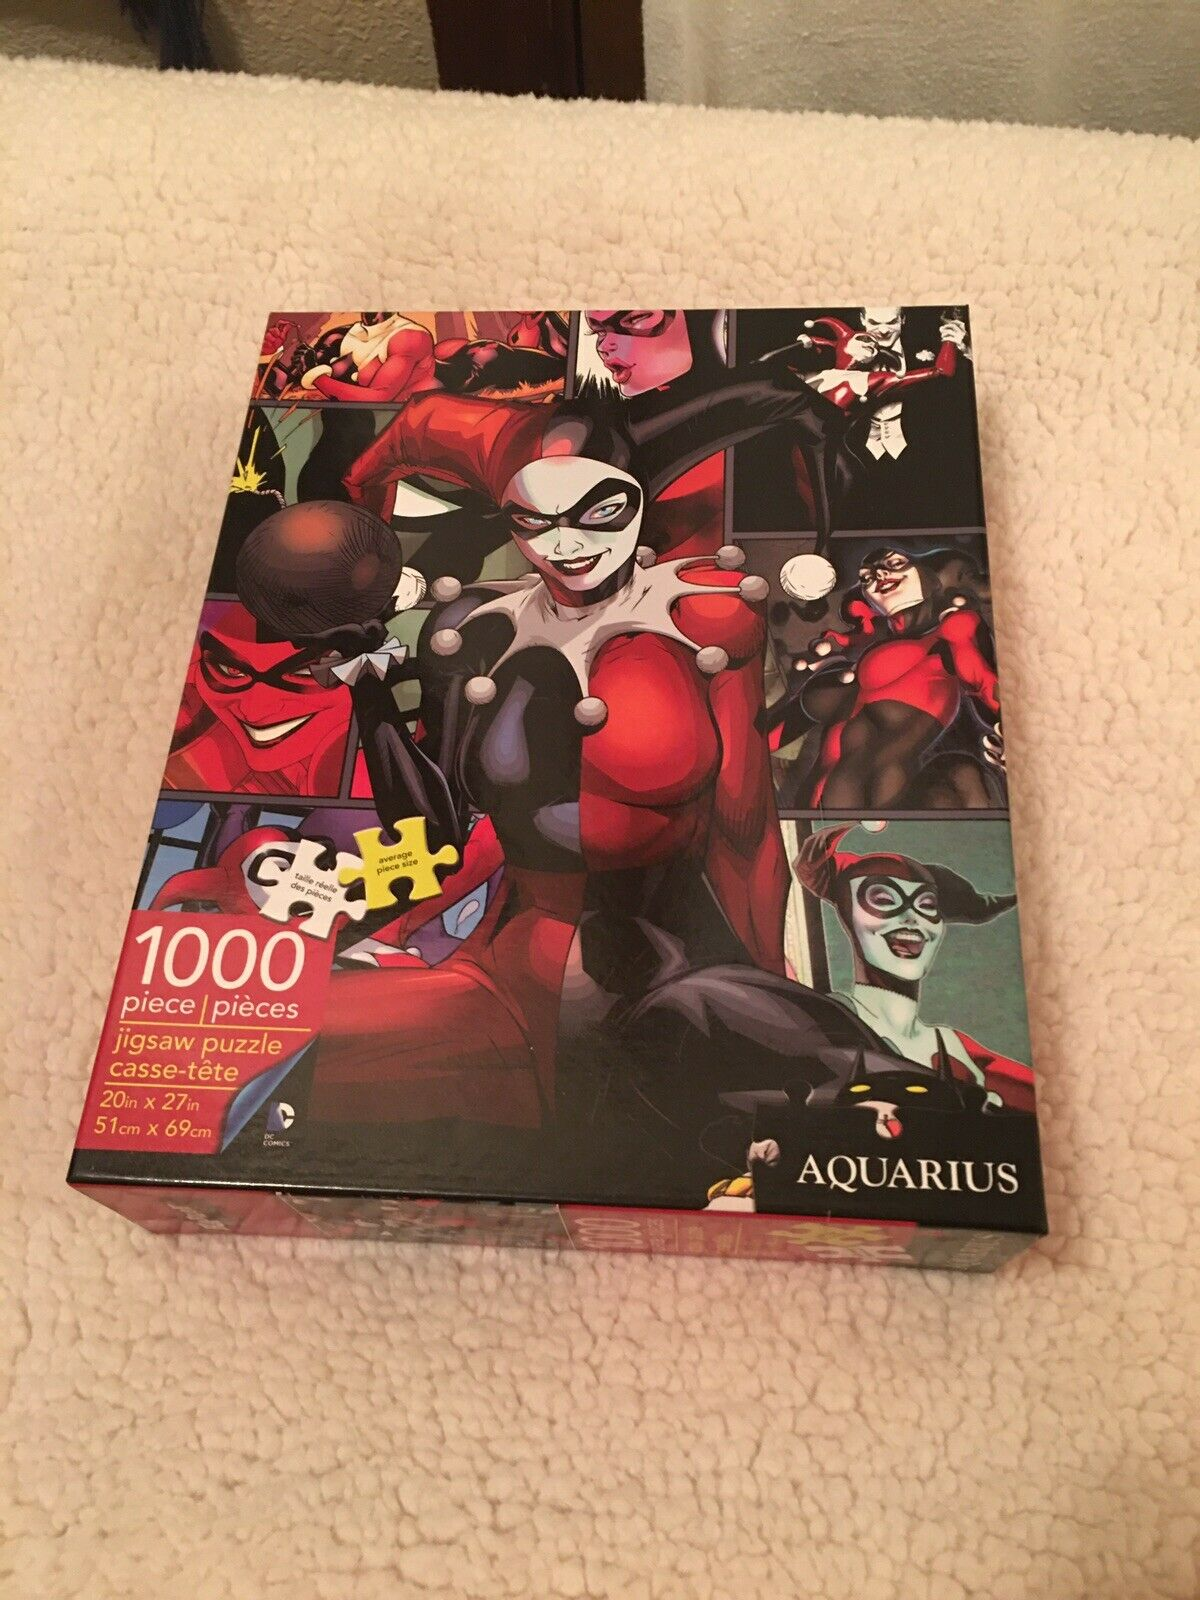 Collectible Puzzle Featuring Birds of Prey Villainess Harley Quinn Officially Licensed DC Comics Merchandise Harley Quinn Die Laughing 1000 Piece Jigsaw Puzzle